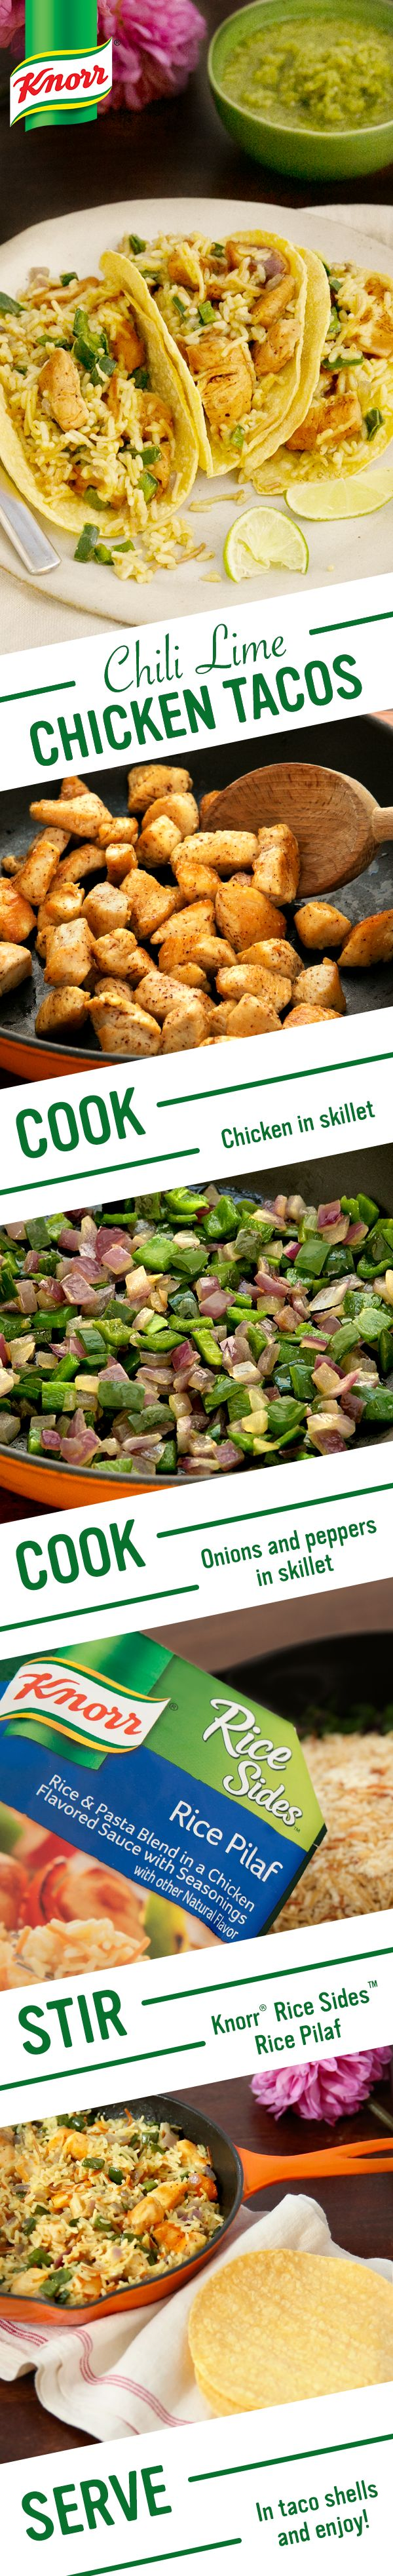 Take your family on a dinner trip inspired by the flavors of Mexico from the comfort of your home cocina. Make Knorr's Chili Lime Chicken & Rice Tacos as an easy & delicioso one skillet meal tonight: 1. Cook chicken 2. Add pepper & onion 3. Stir in Knorr® Rice Sides™ - Rice Pilaf. Serve w/ corn tortillas or taco shells, sour cream, lime wedges, & salsa verde. Enjoy!